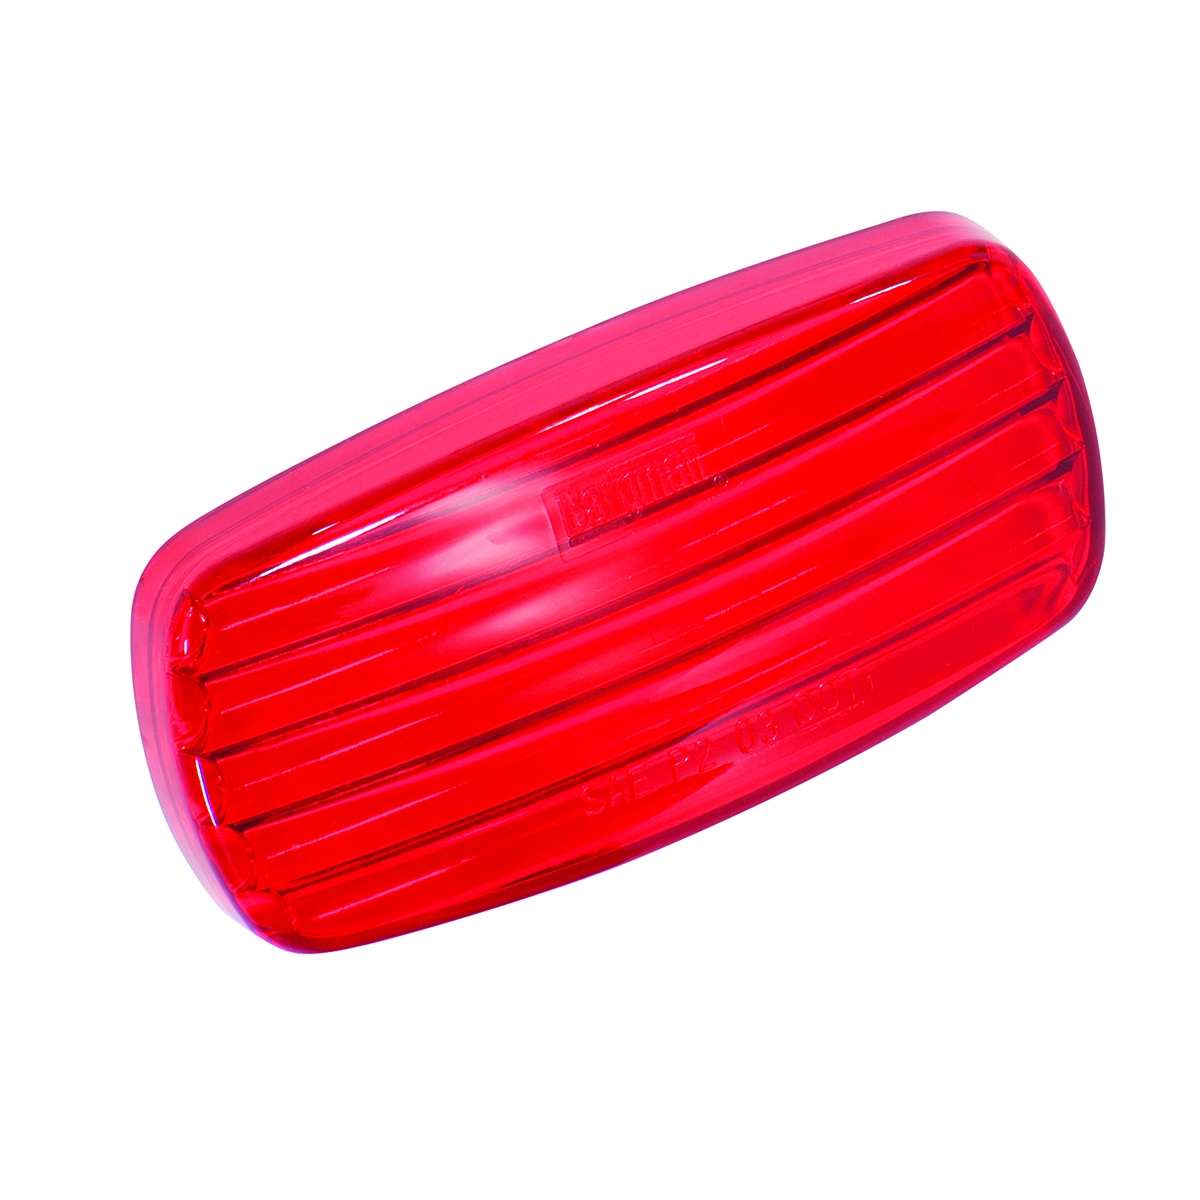 34-58-010 Bargman Trailer Light Lens Use With Bargman 58 Series Side